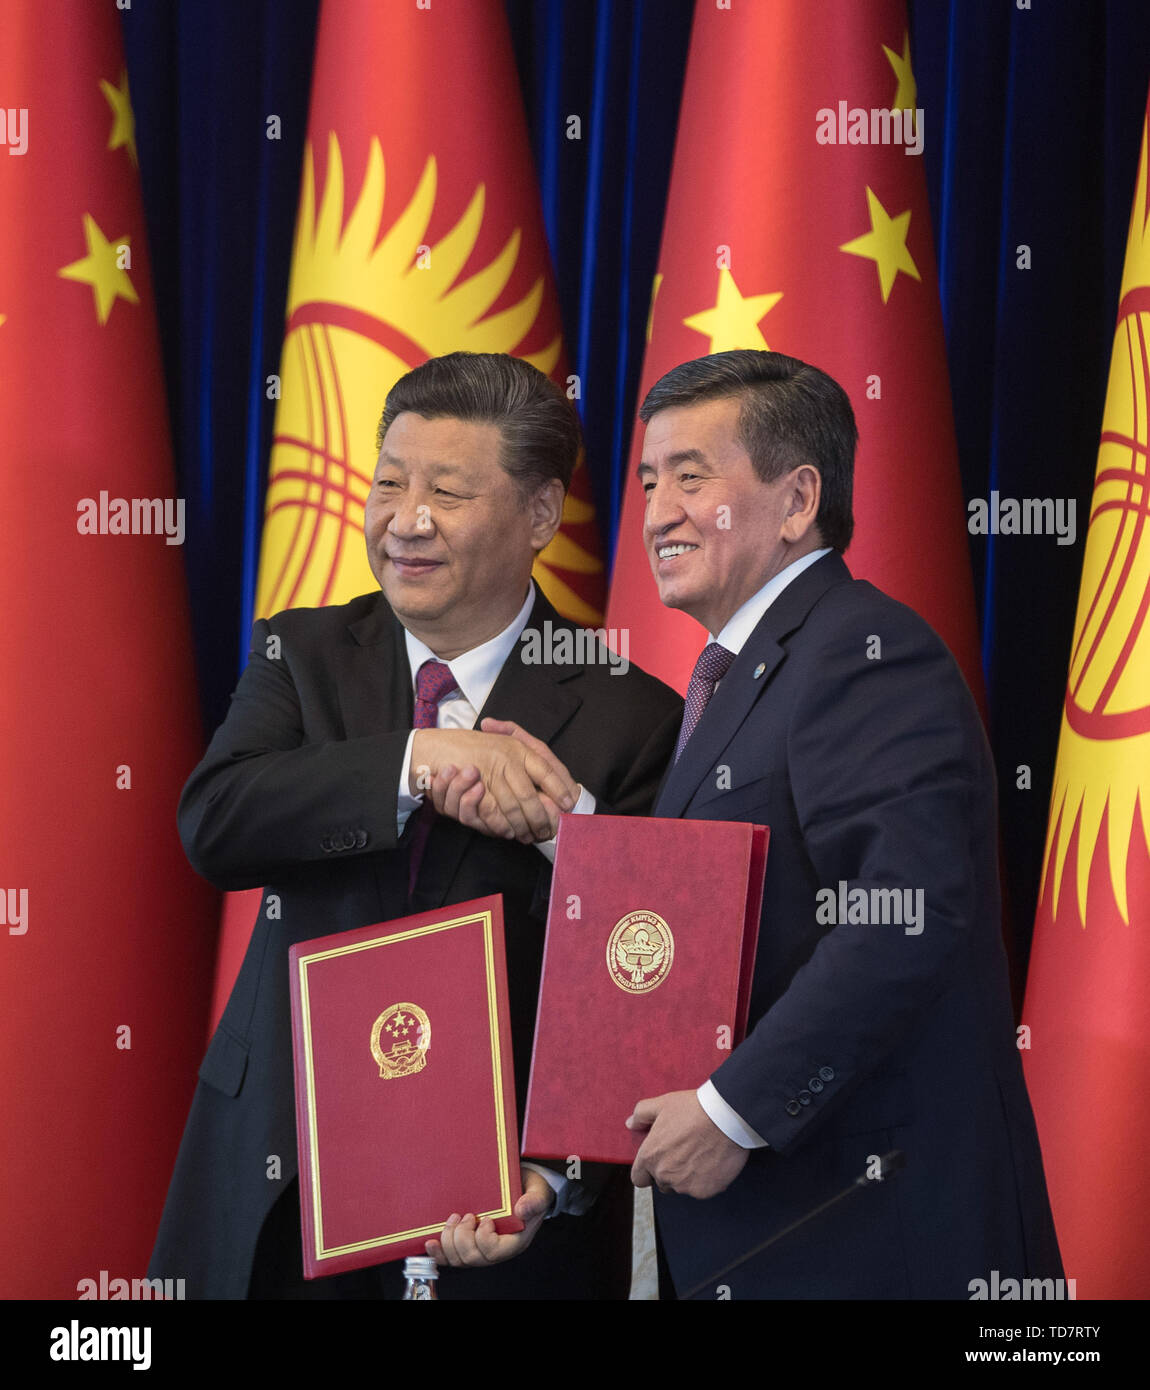 Bishkek, Kyrgyzstan. 13th June, 2019. Chinese President Xi Jinping shakes hands with his Kyrgyz counterpart Sooronbay Jeenbekov after signing the joint statement on taking their countries' comprehensive strategic partnership to new heights in Bishkek, Kyrgyzstan, June 13, 2019. Xi and Jeenbekov held talks here Thursday, agreeing to take their countries' comprehensive strategic partnership to new heights. Credit: Fei Maohua/Xinhua/Alamy Live News - Stock Image